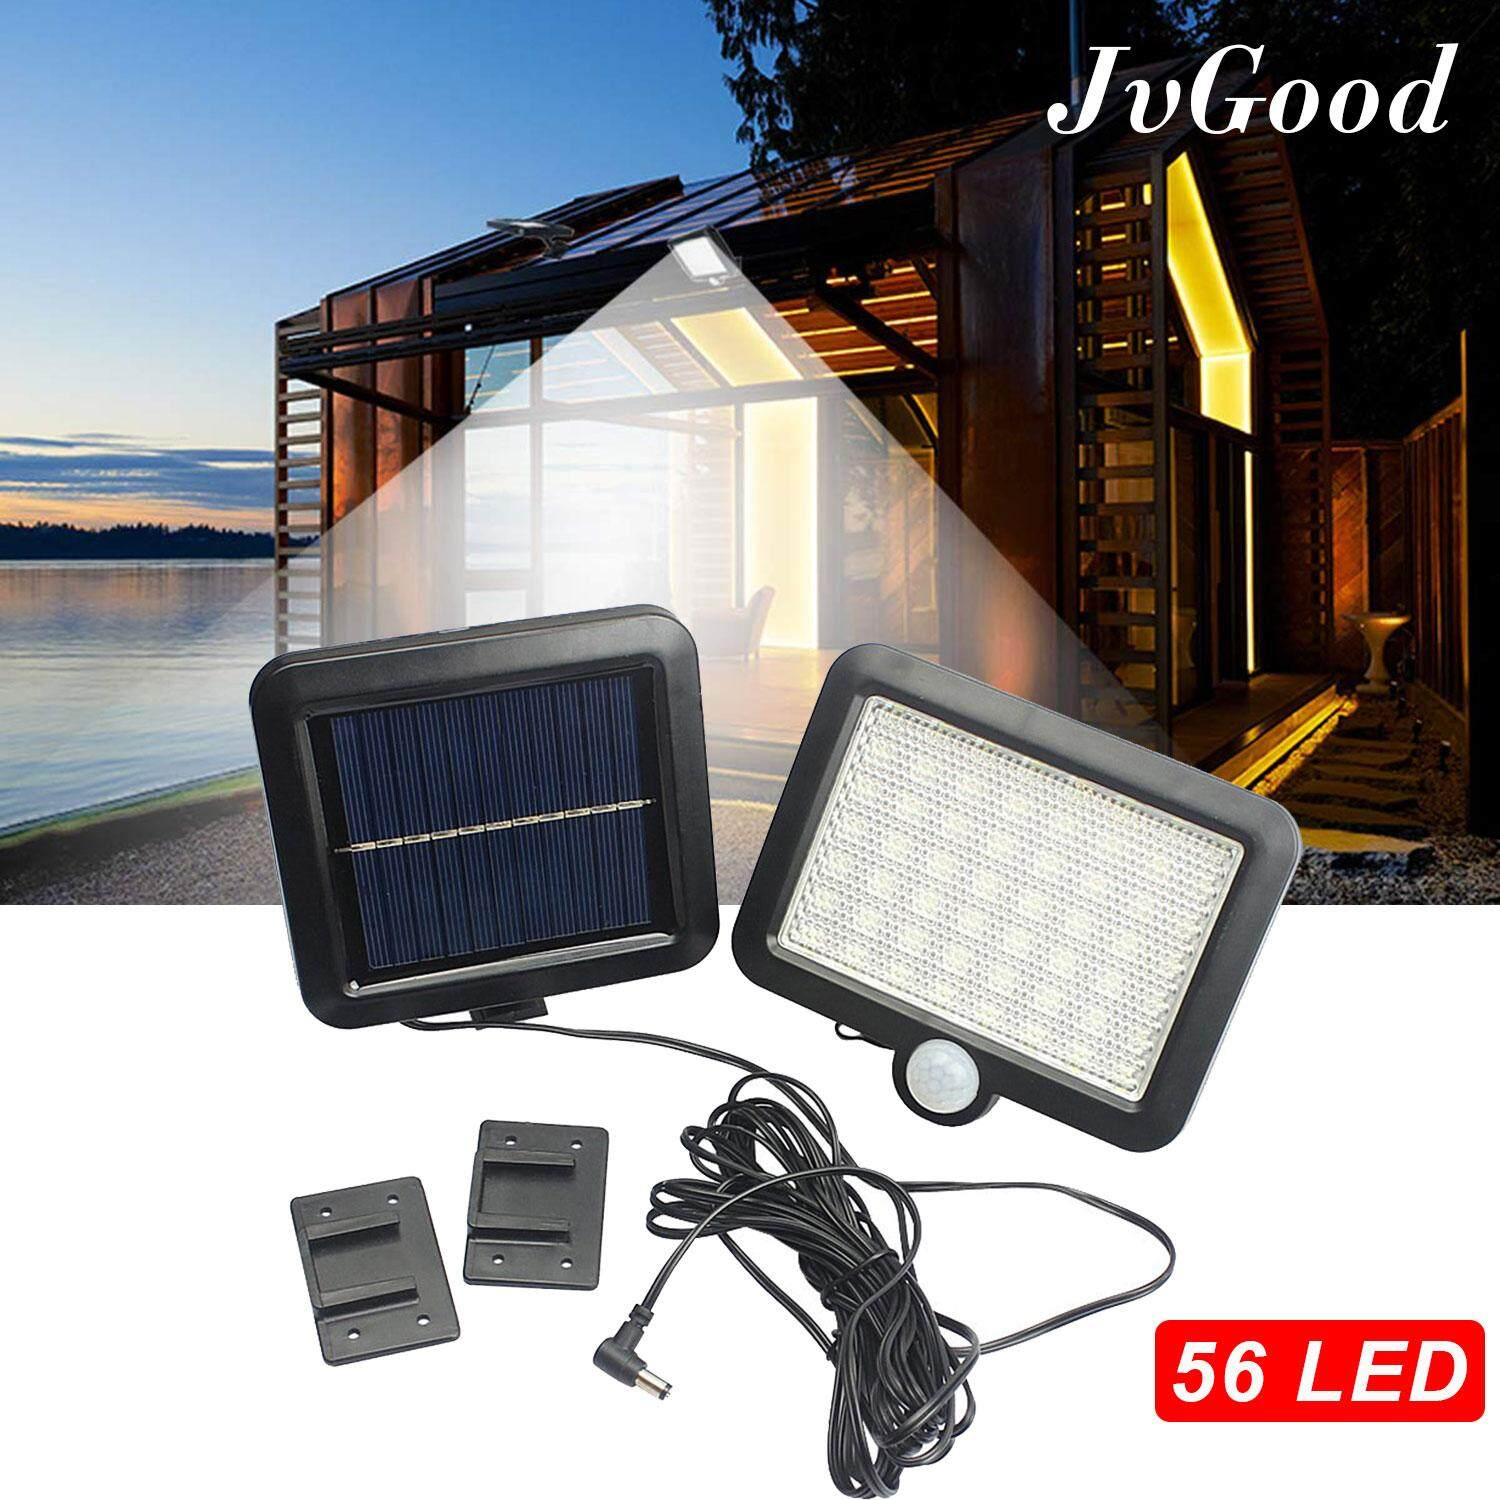 JvGood Outdoor Lighting Sensor Solar Wall light 56 LED Solar Lights Waterproof Solar Powered Motion Sensor Garden Security Lamp Wireless Security Lights Outside Wall Lamp for Driveway Patio Garden Path